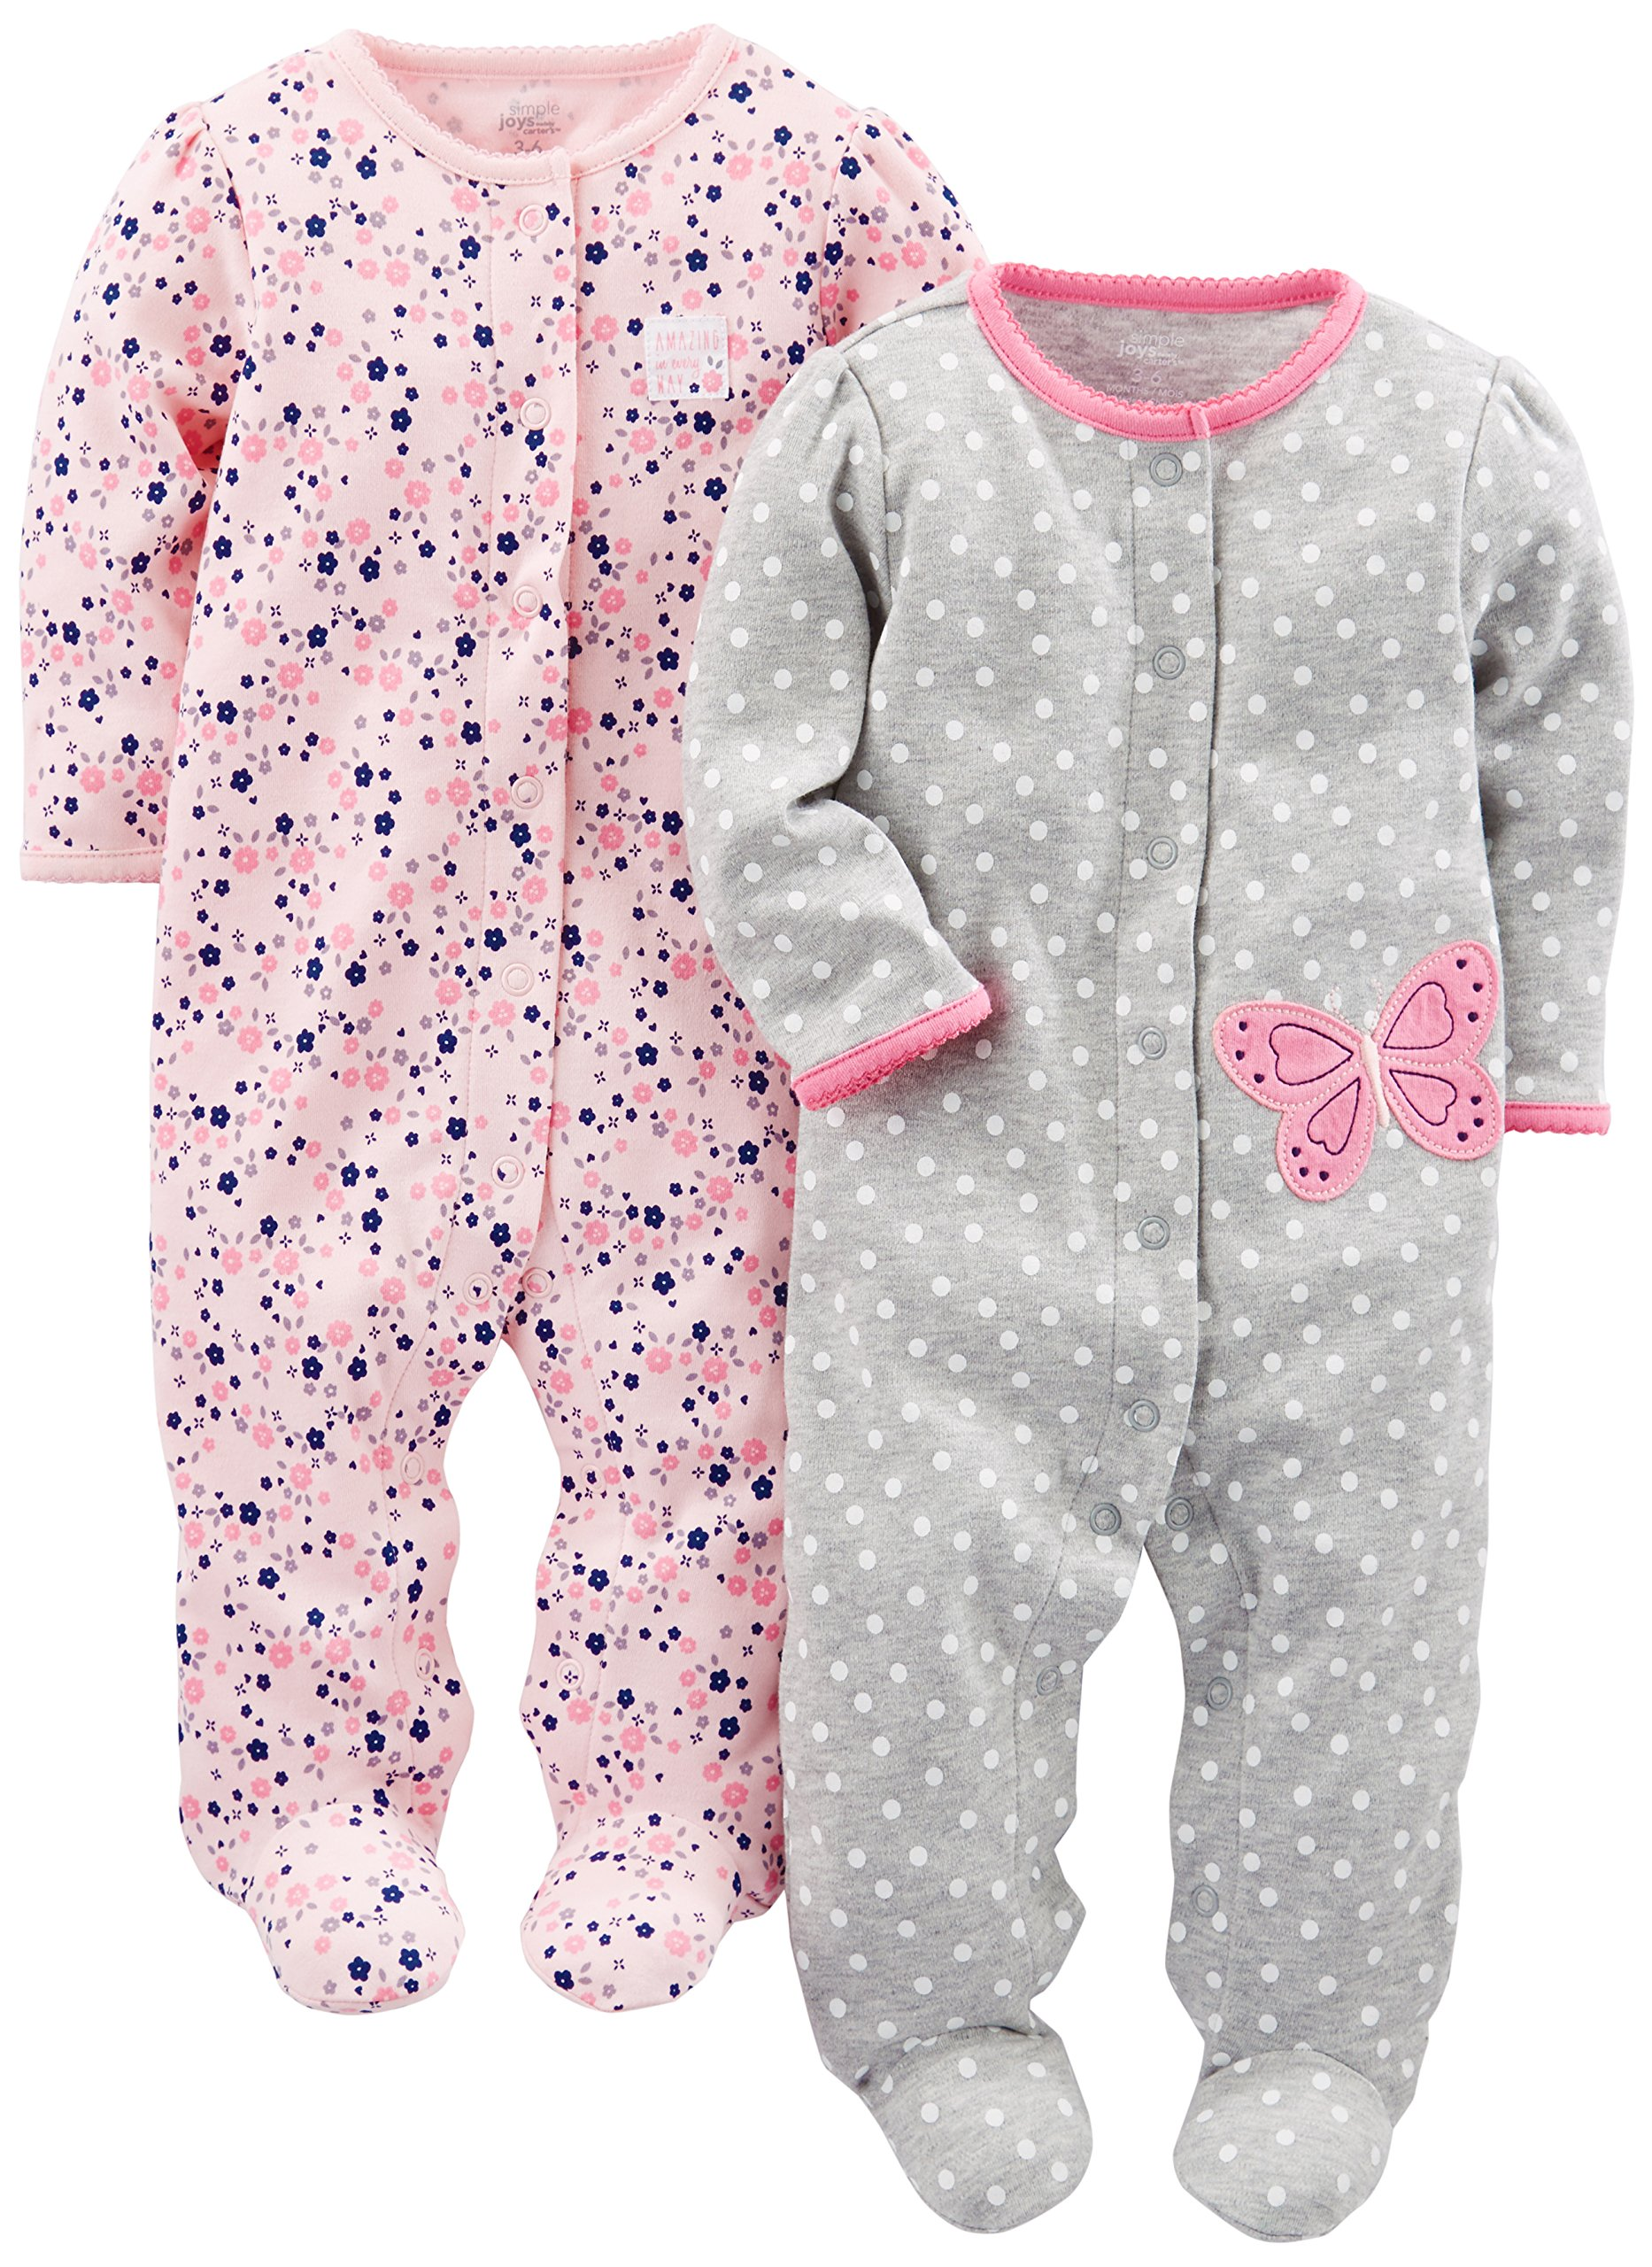 863119cc96 Simple Joys by Carter s Baby Girls  2-Pack Cotton Footed Sleep and Play  product